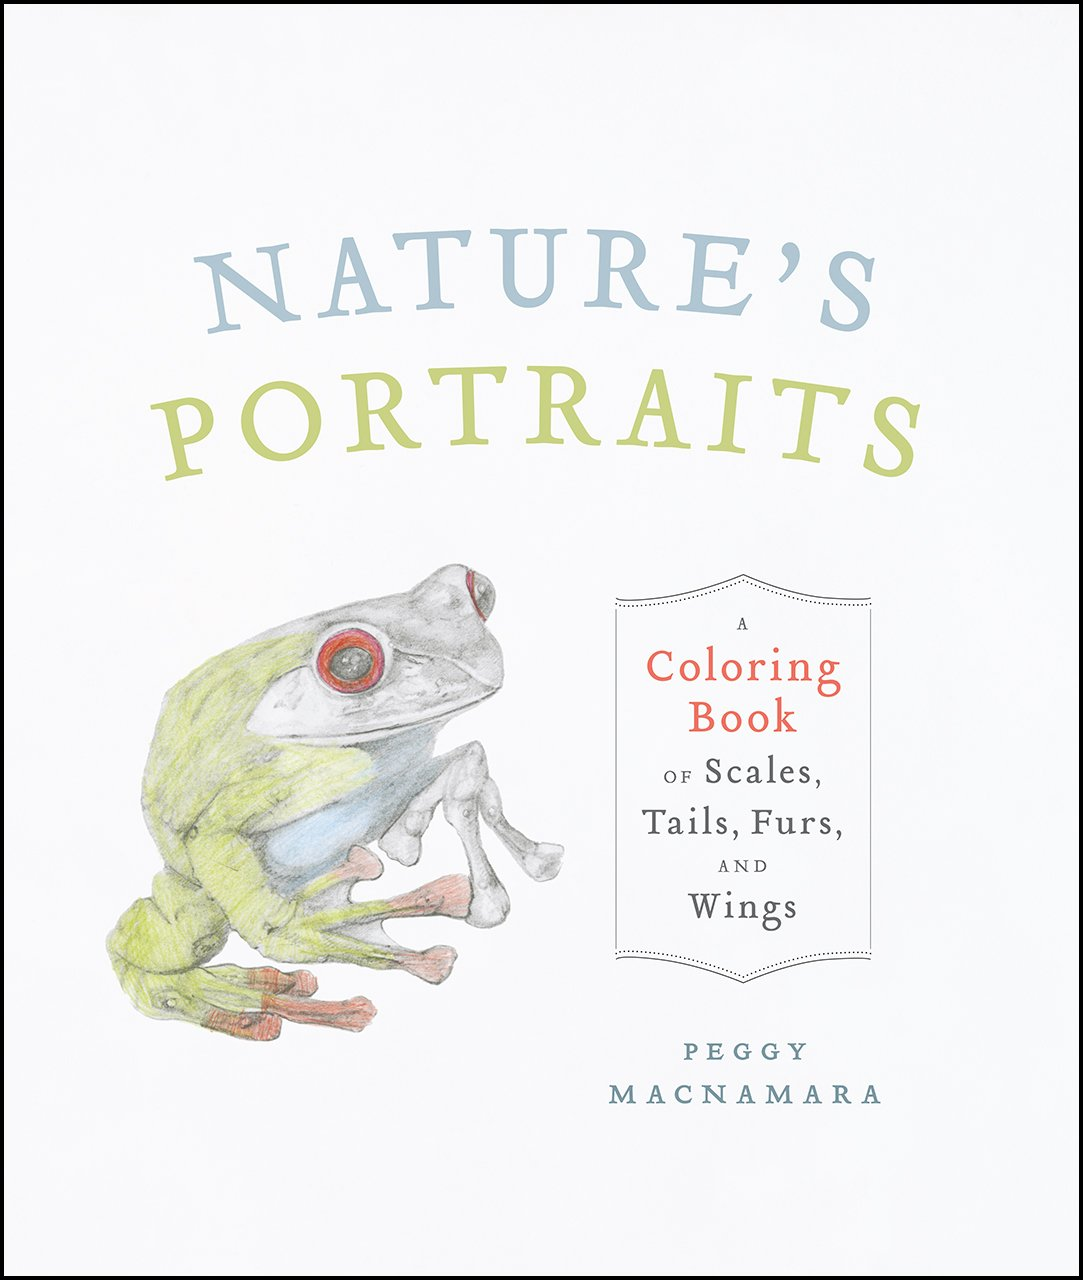 The zoology coloring book - Amazon Com Nature S Portraits A Coloring Book Of Scales Tails Furs And Wings 9780226431550 Peggy Macnamara Books